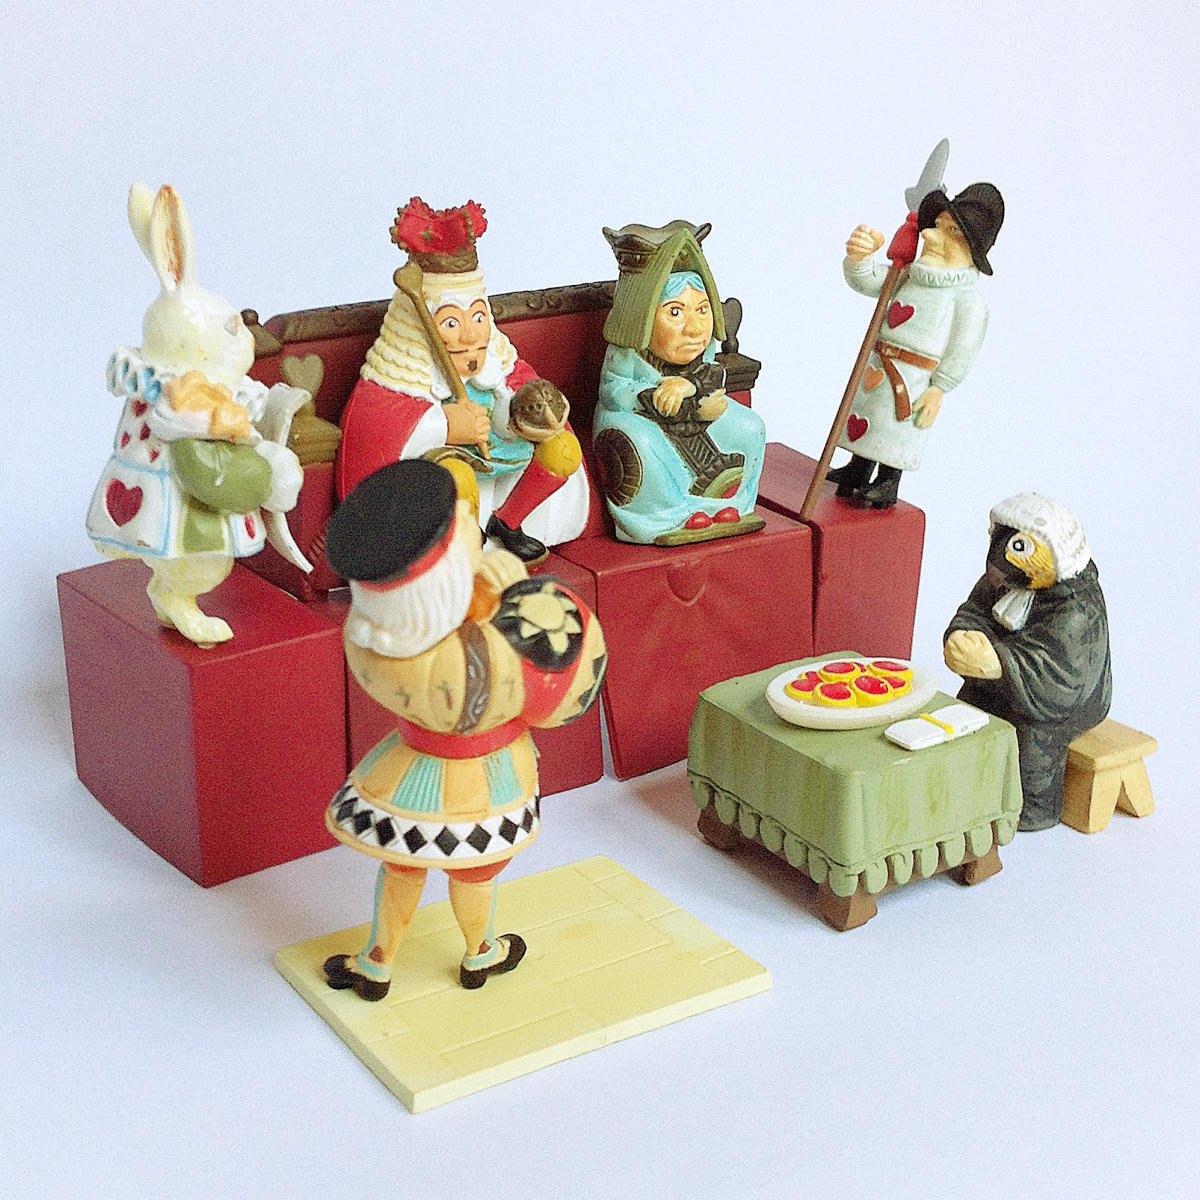 Alice in Dollland Part 2 Complete set of 16 figures by Furuta